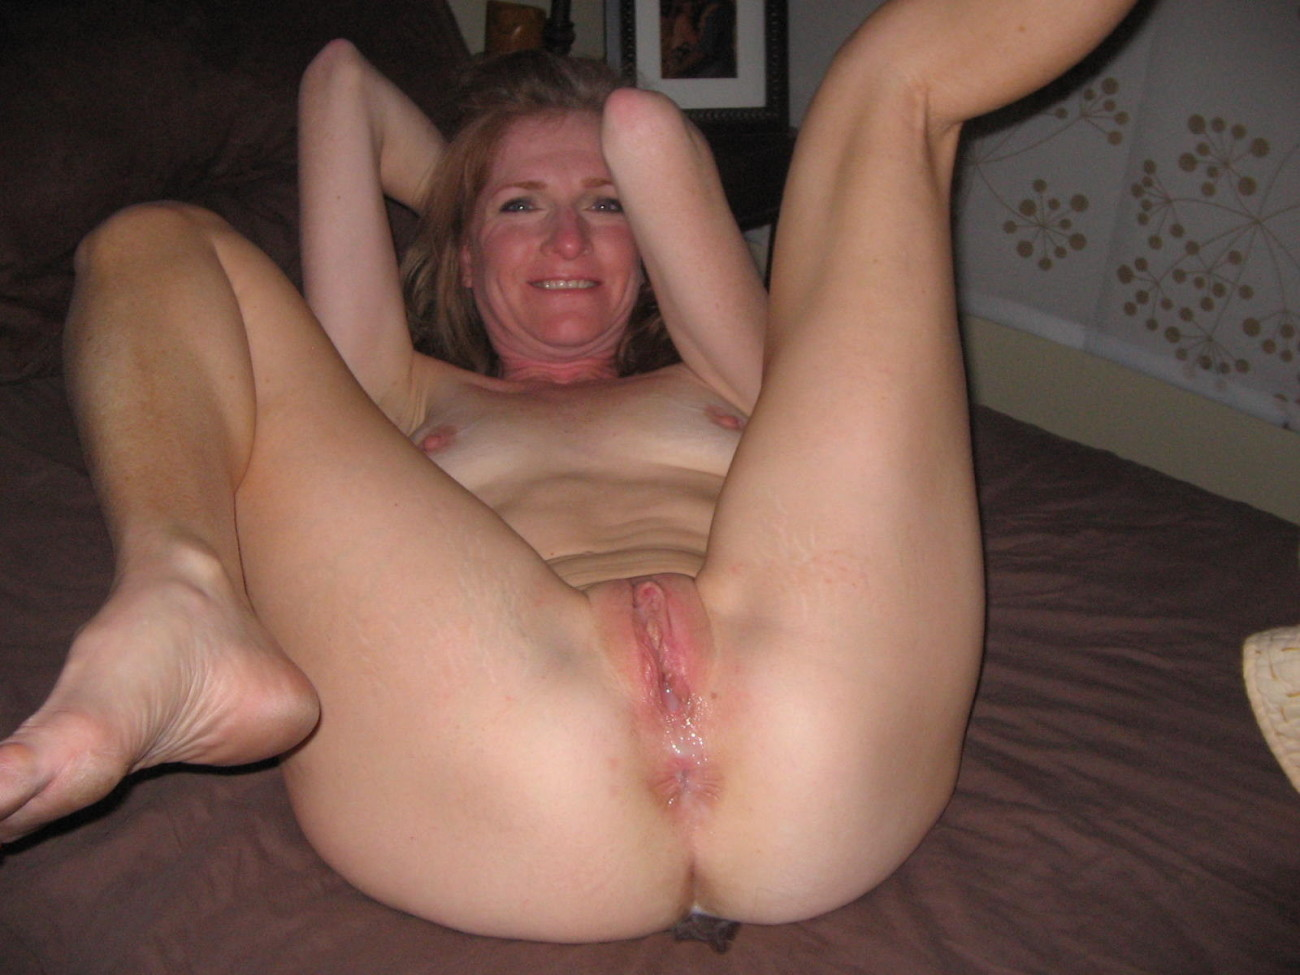 More hot wives spreading open their pussies for us